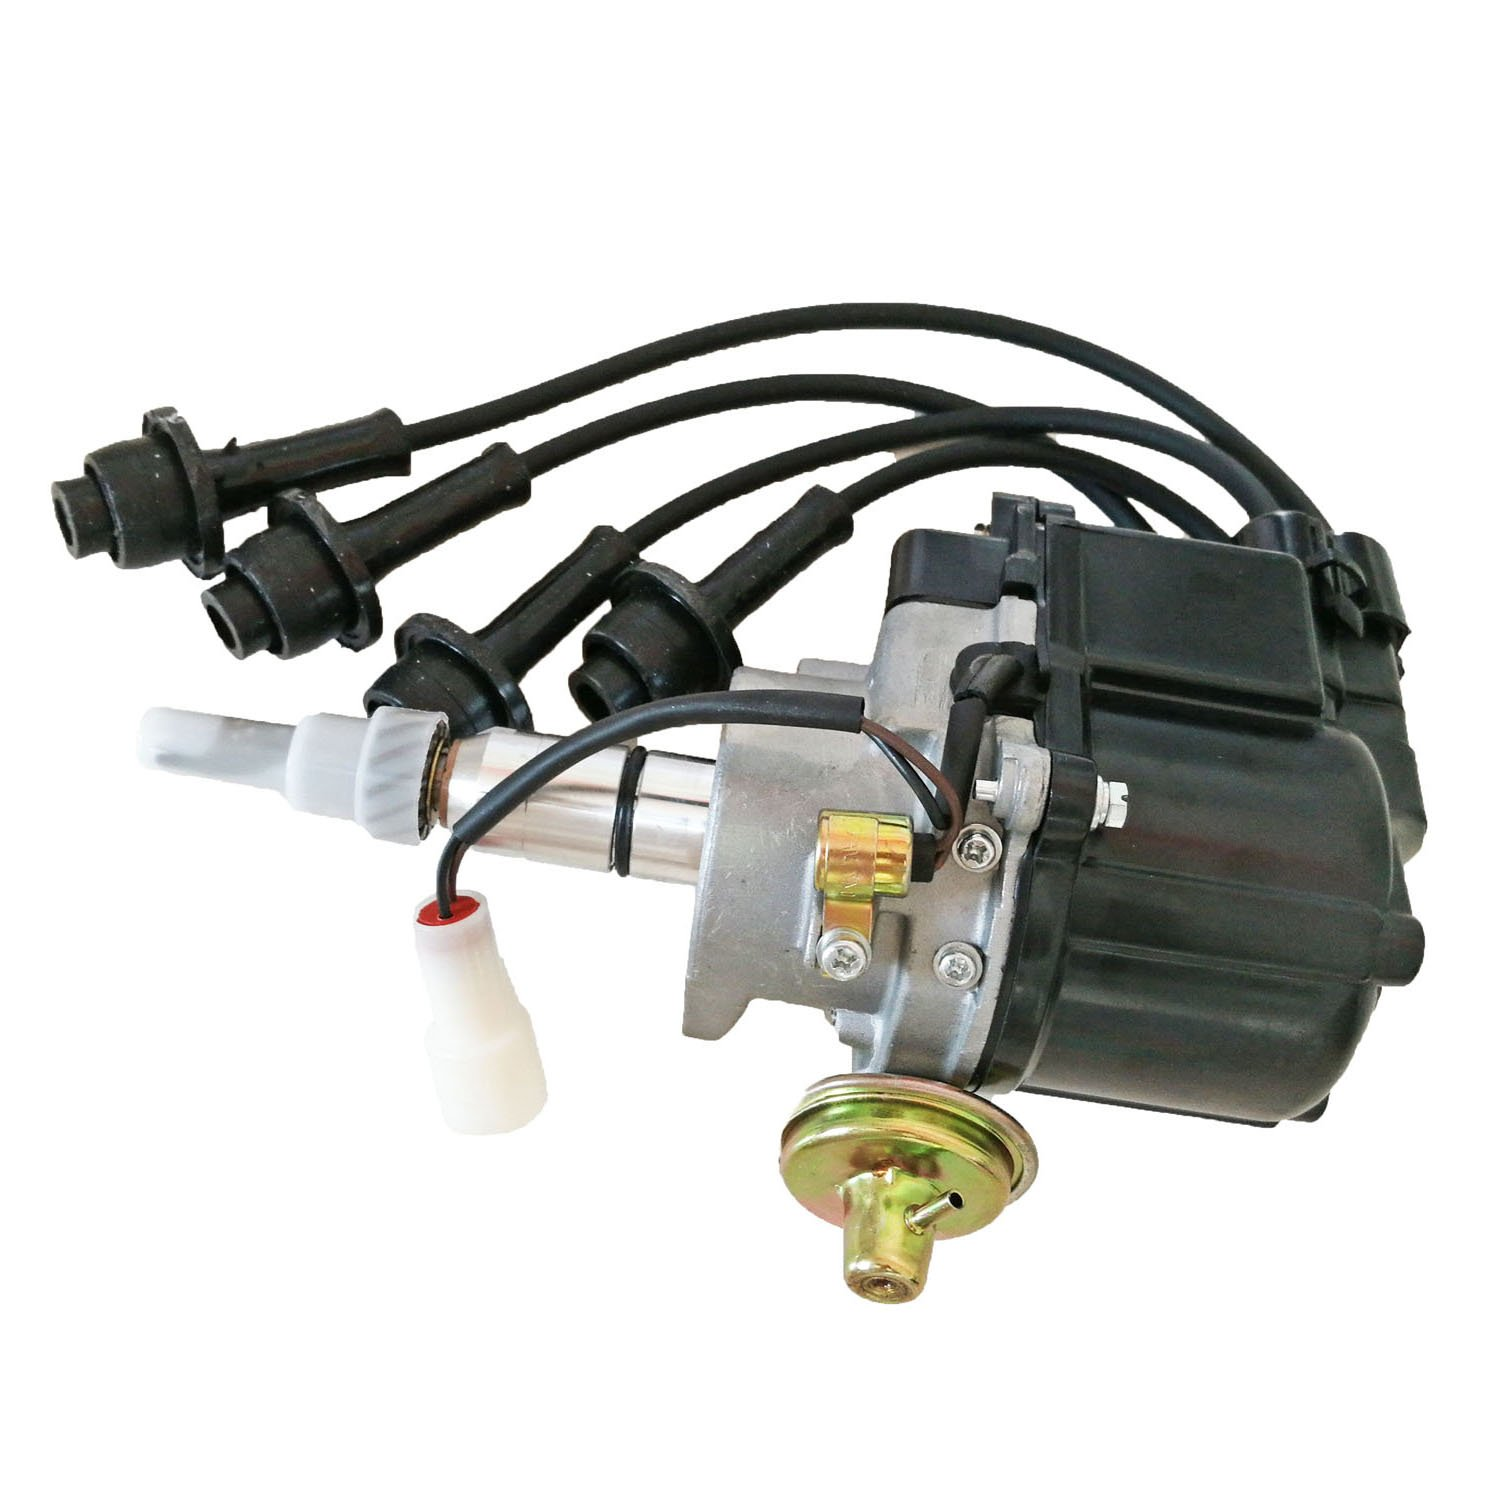 Mover Parts Distributor 19030 78151 71 For Toyota How Timing 4y Engine Forklift Automotive